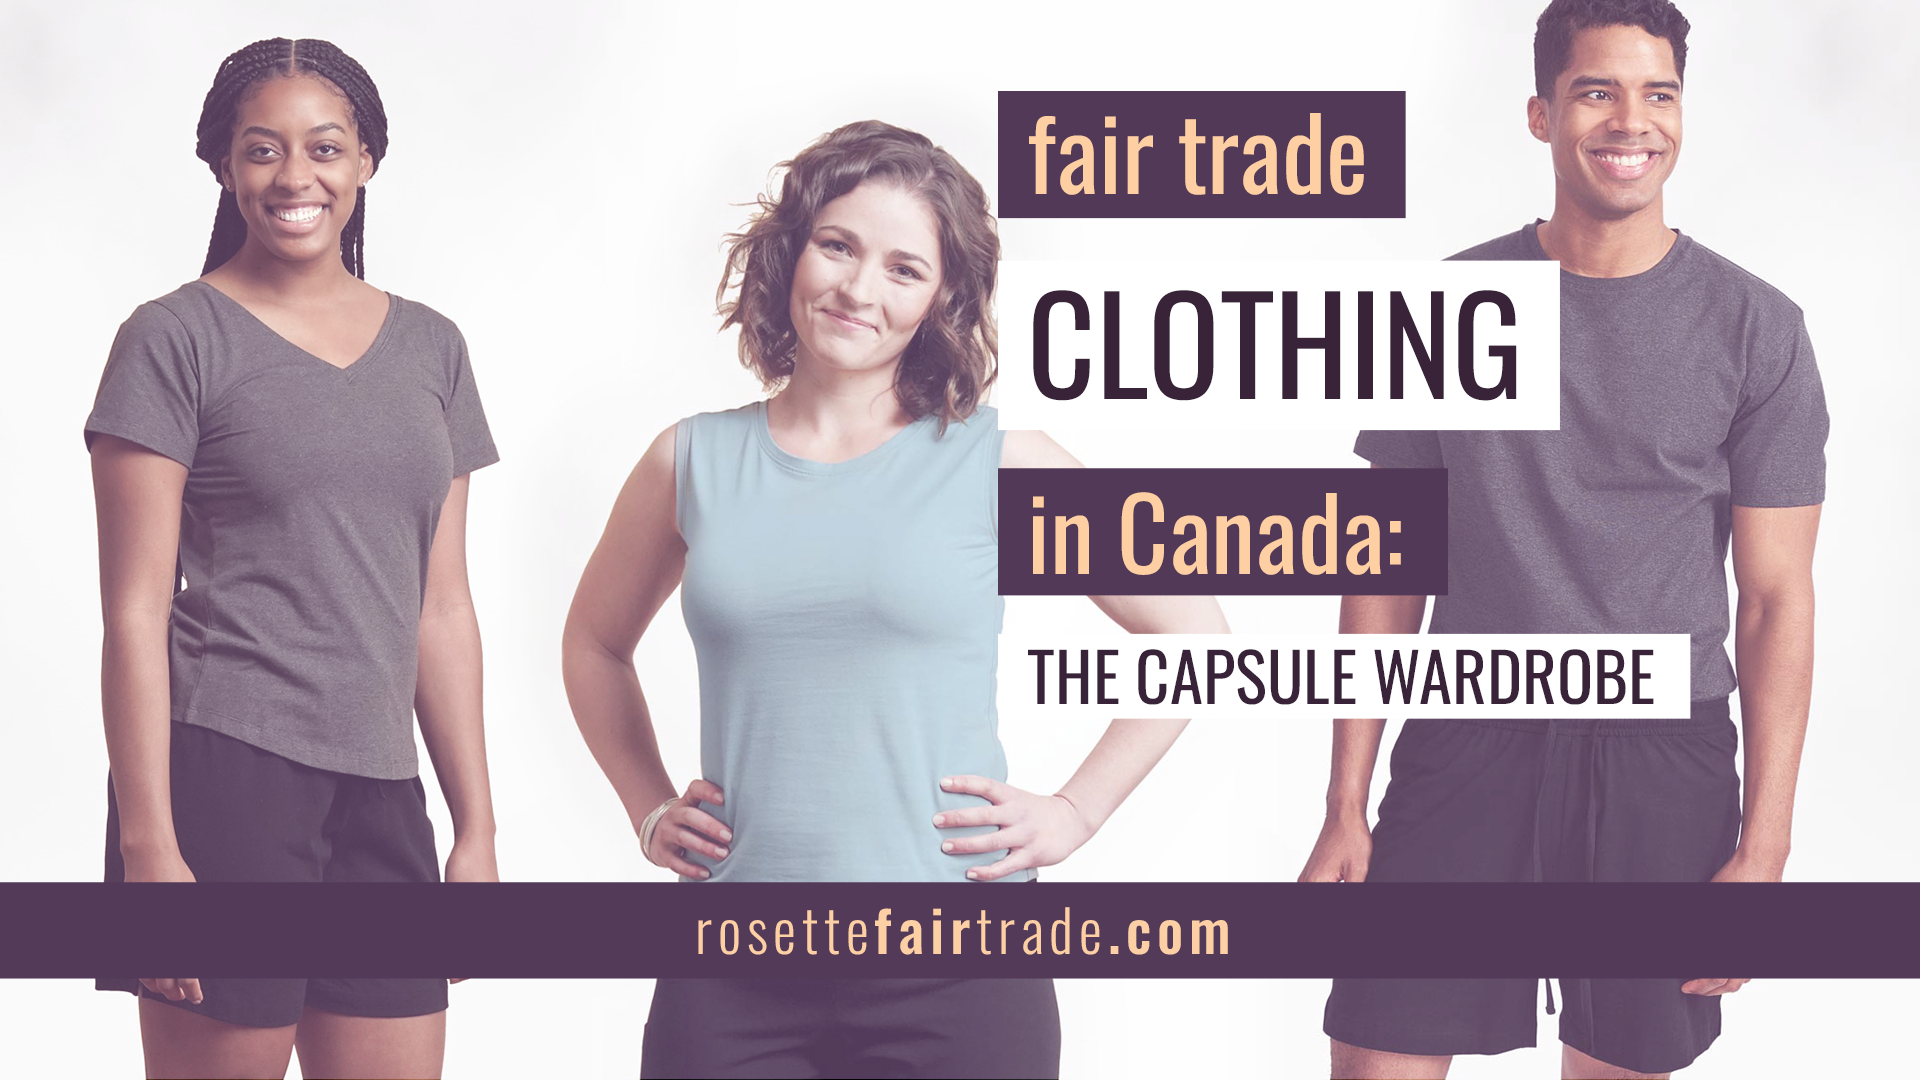 Fair trade clothing in Canada (capsule wardrobe) on the Rosette Network